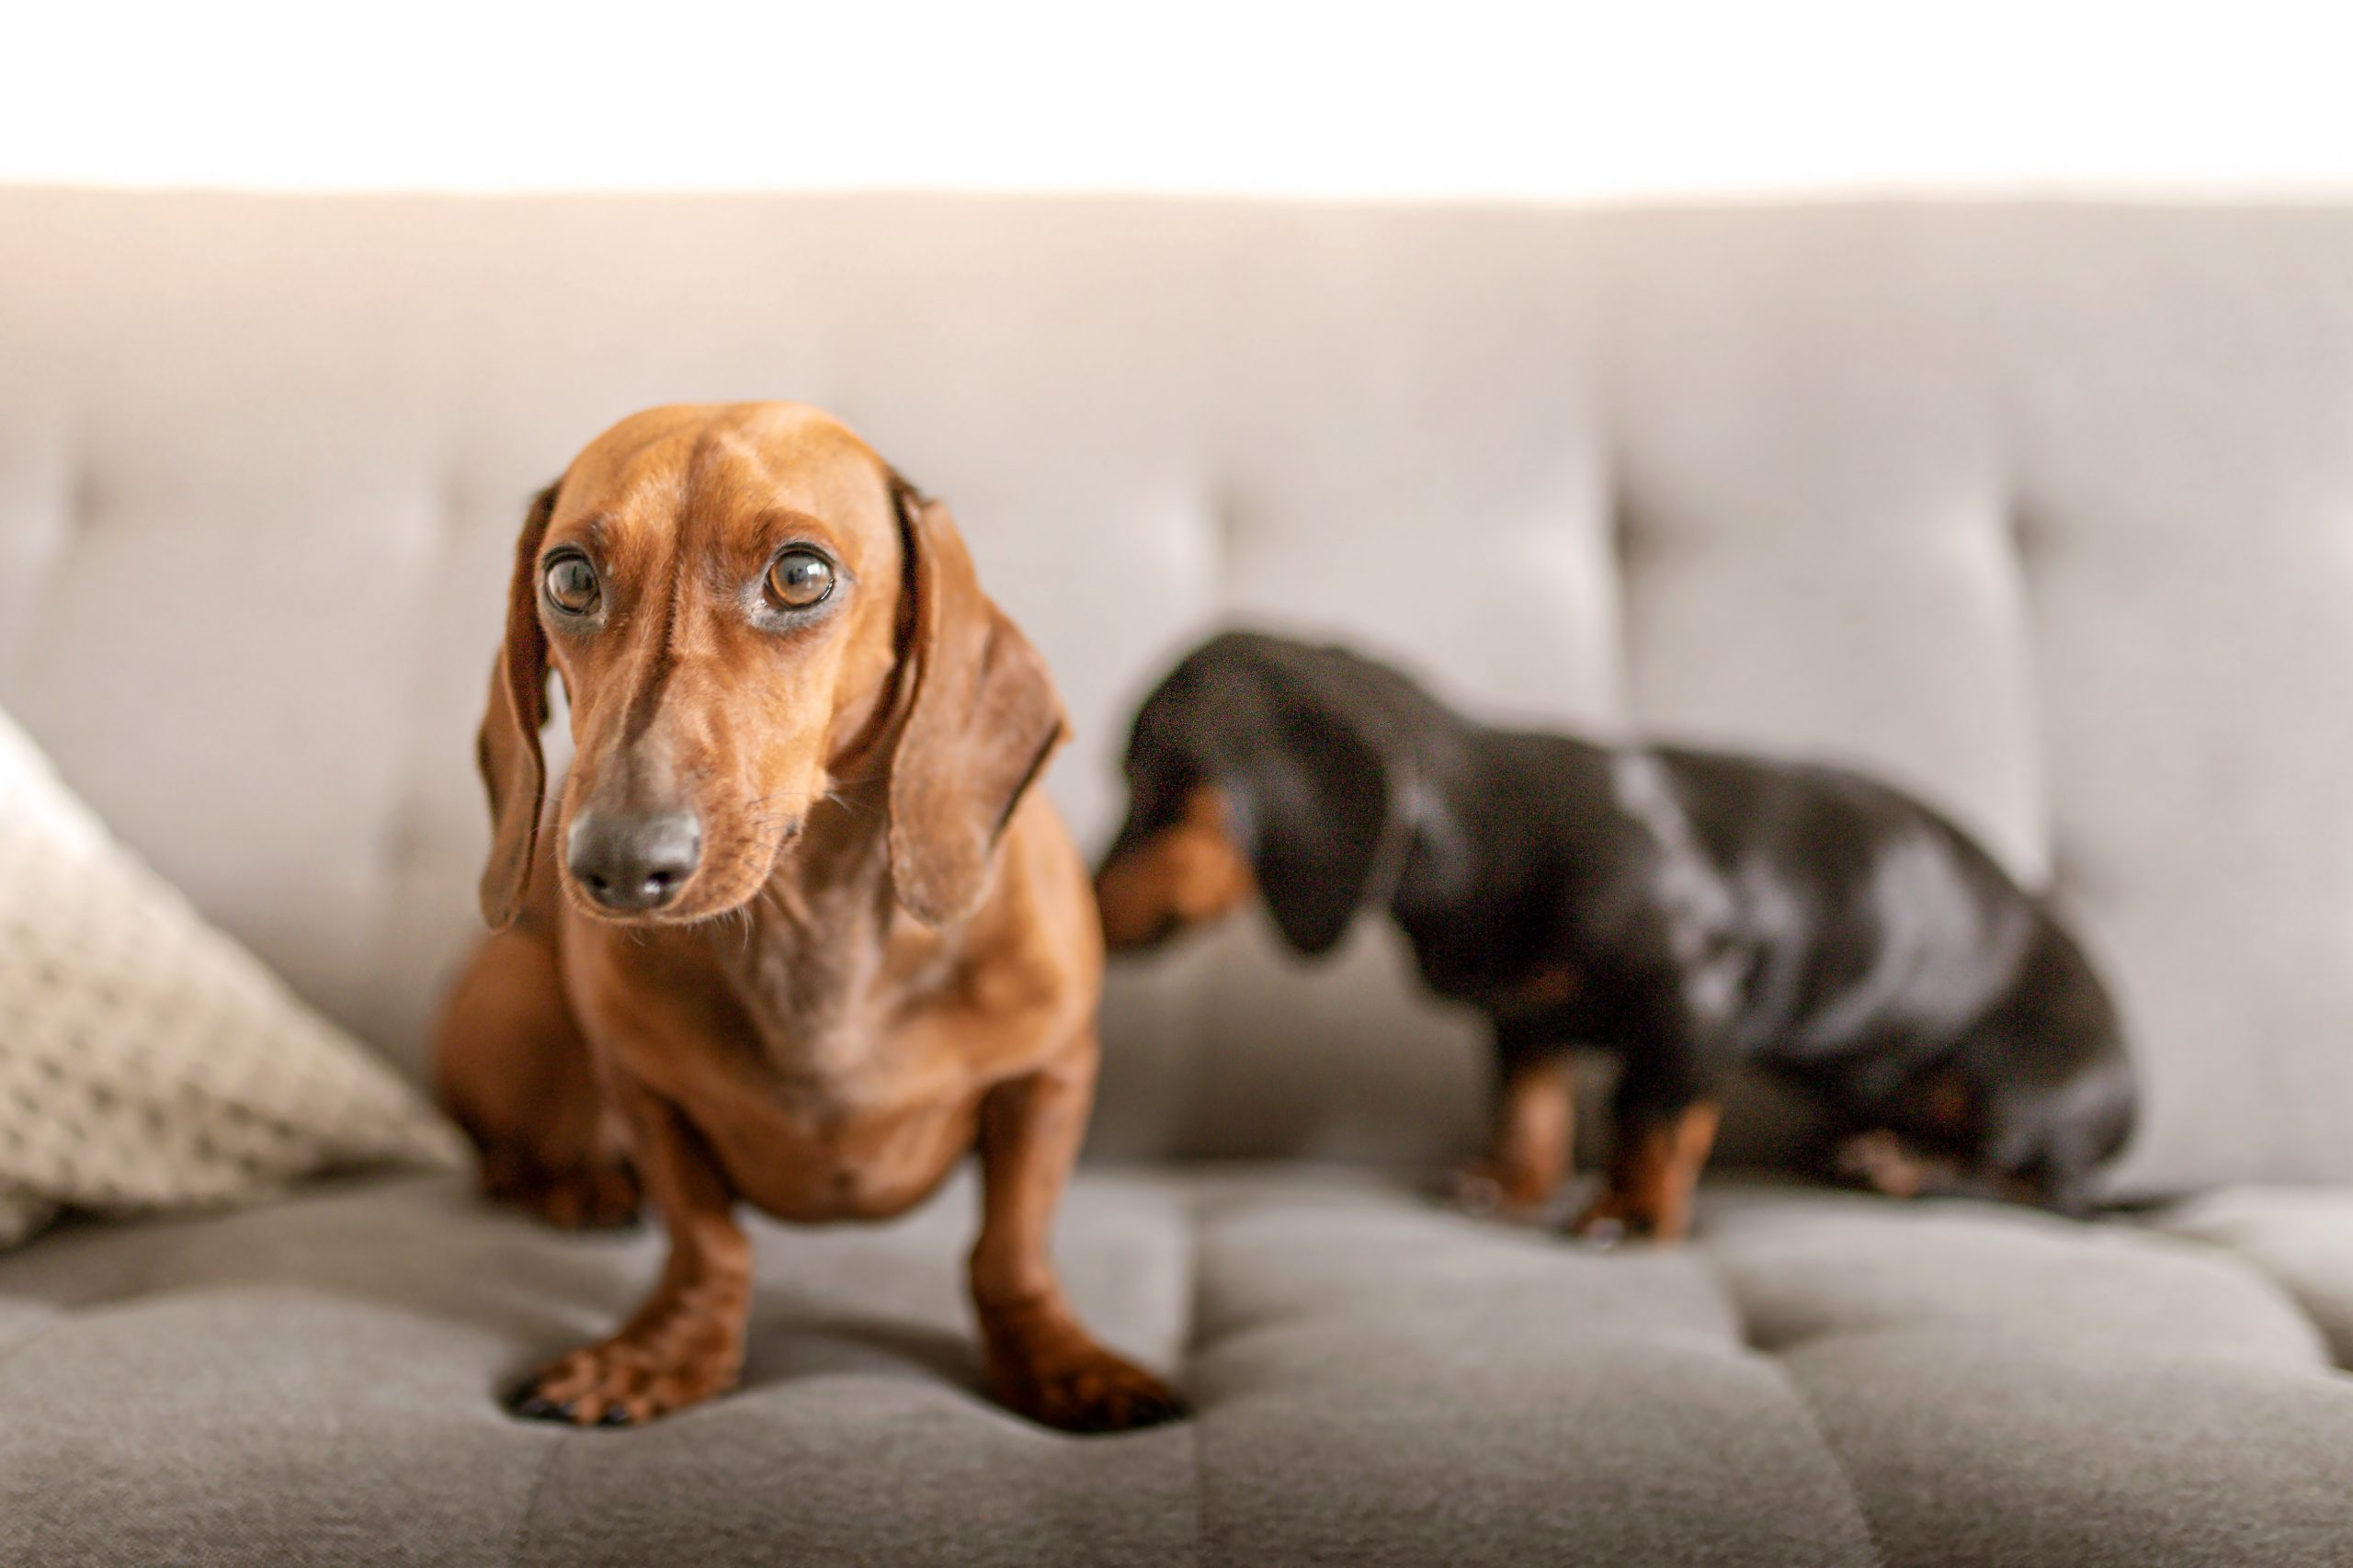 7 Simple Tips for Keeping a Clean Home With Dogs - Hey, Djangles. Cute Dachshunds on sofa. Image by Dominika Roseclay.